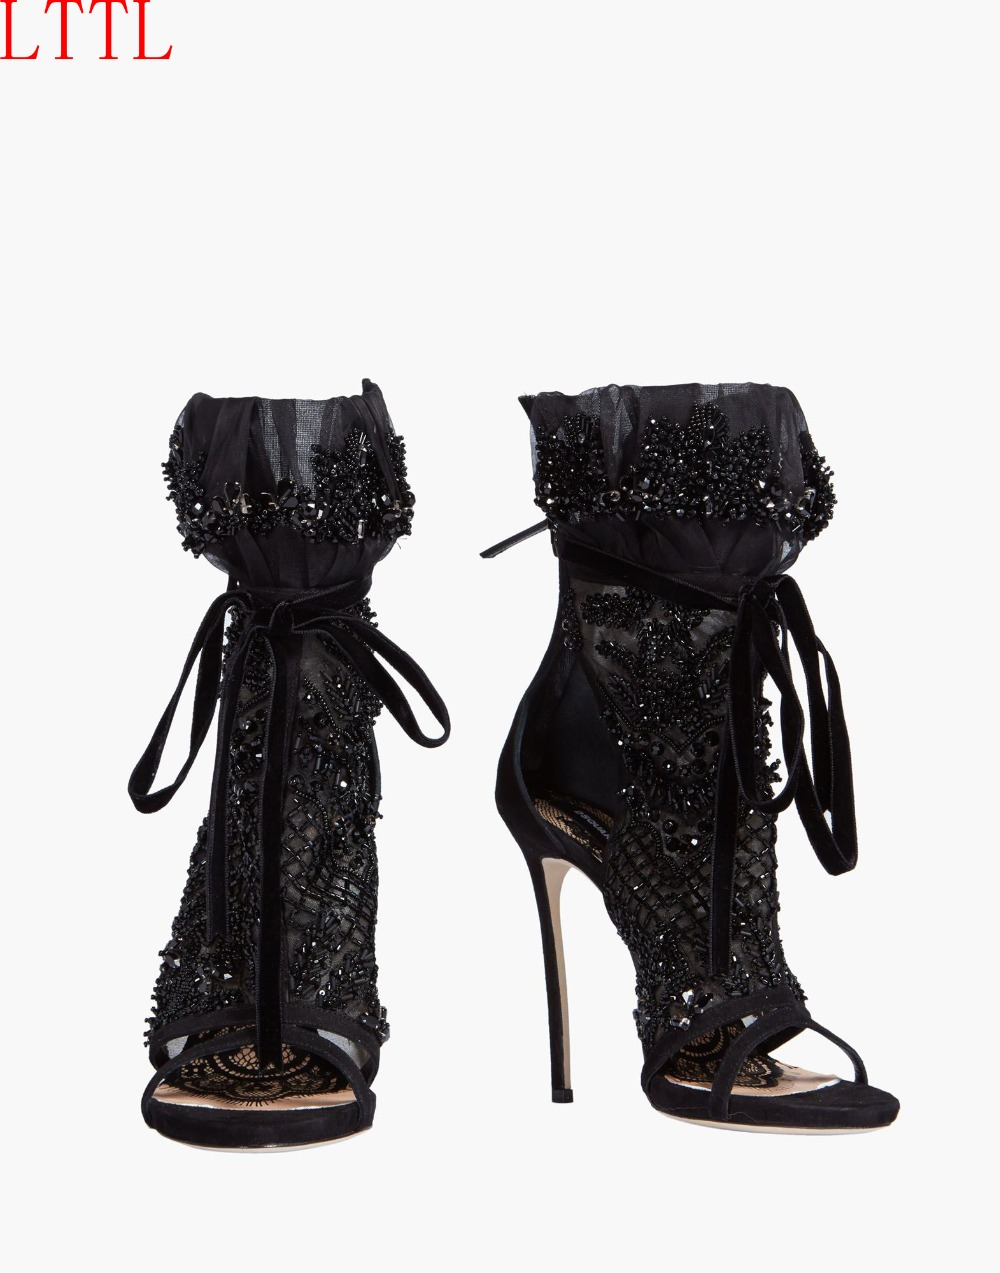 Summer Leather Black Mesh Rhinestone Ankle Boots Extreme Thin High Heel Open Toe Lace Up Glitter Sandals Shoes Woman 2019